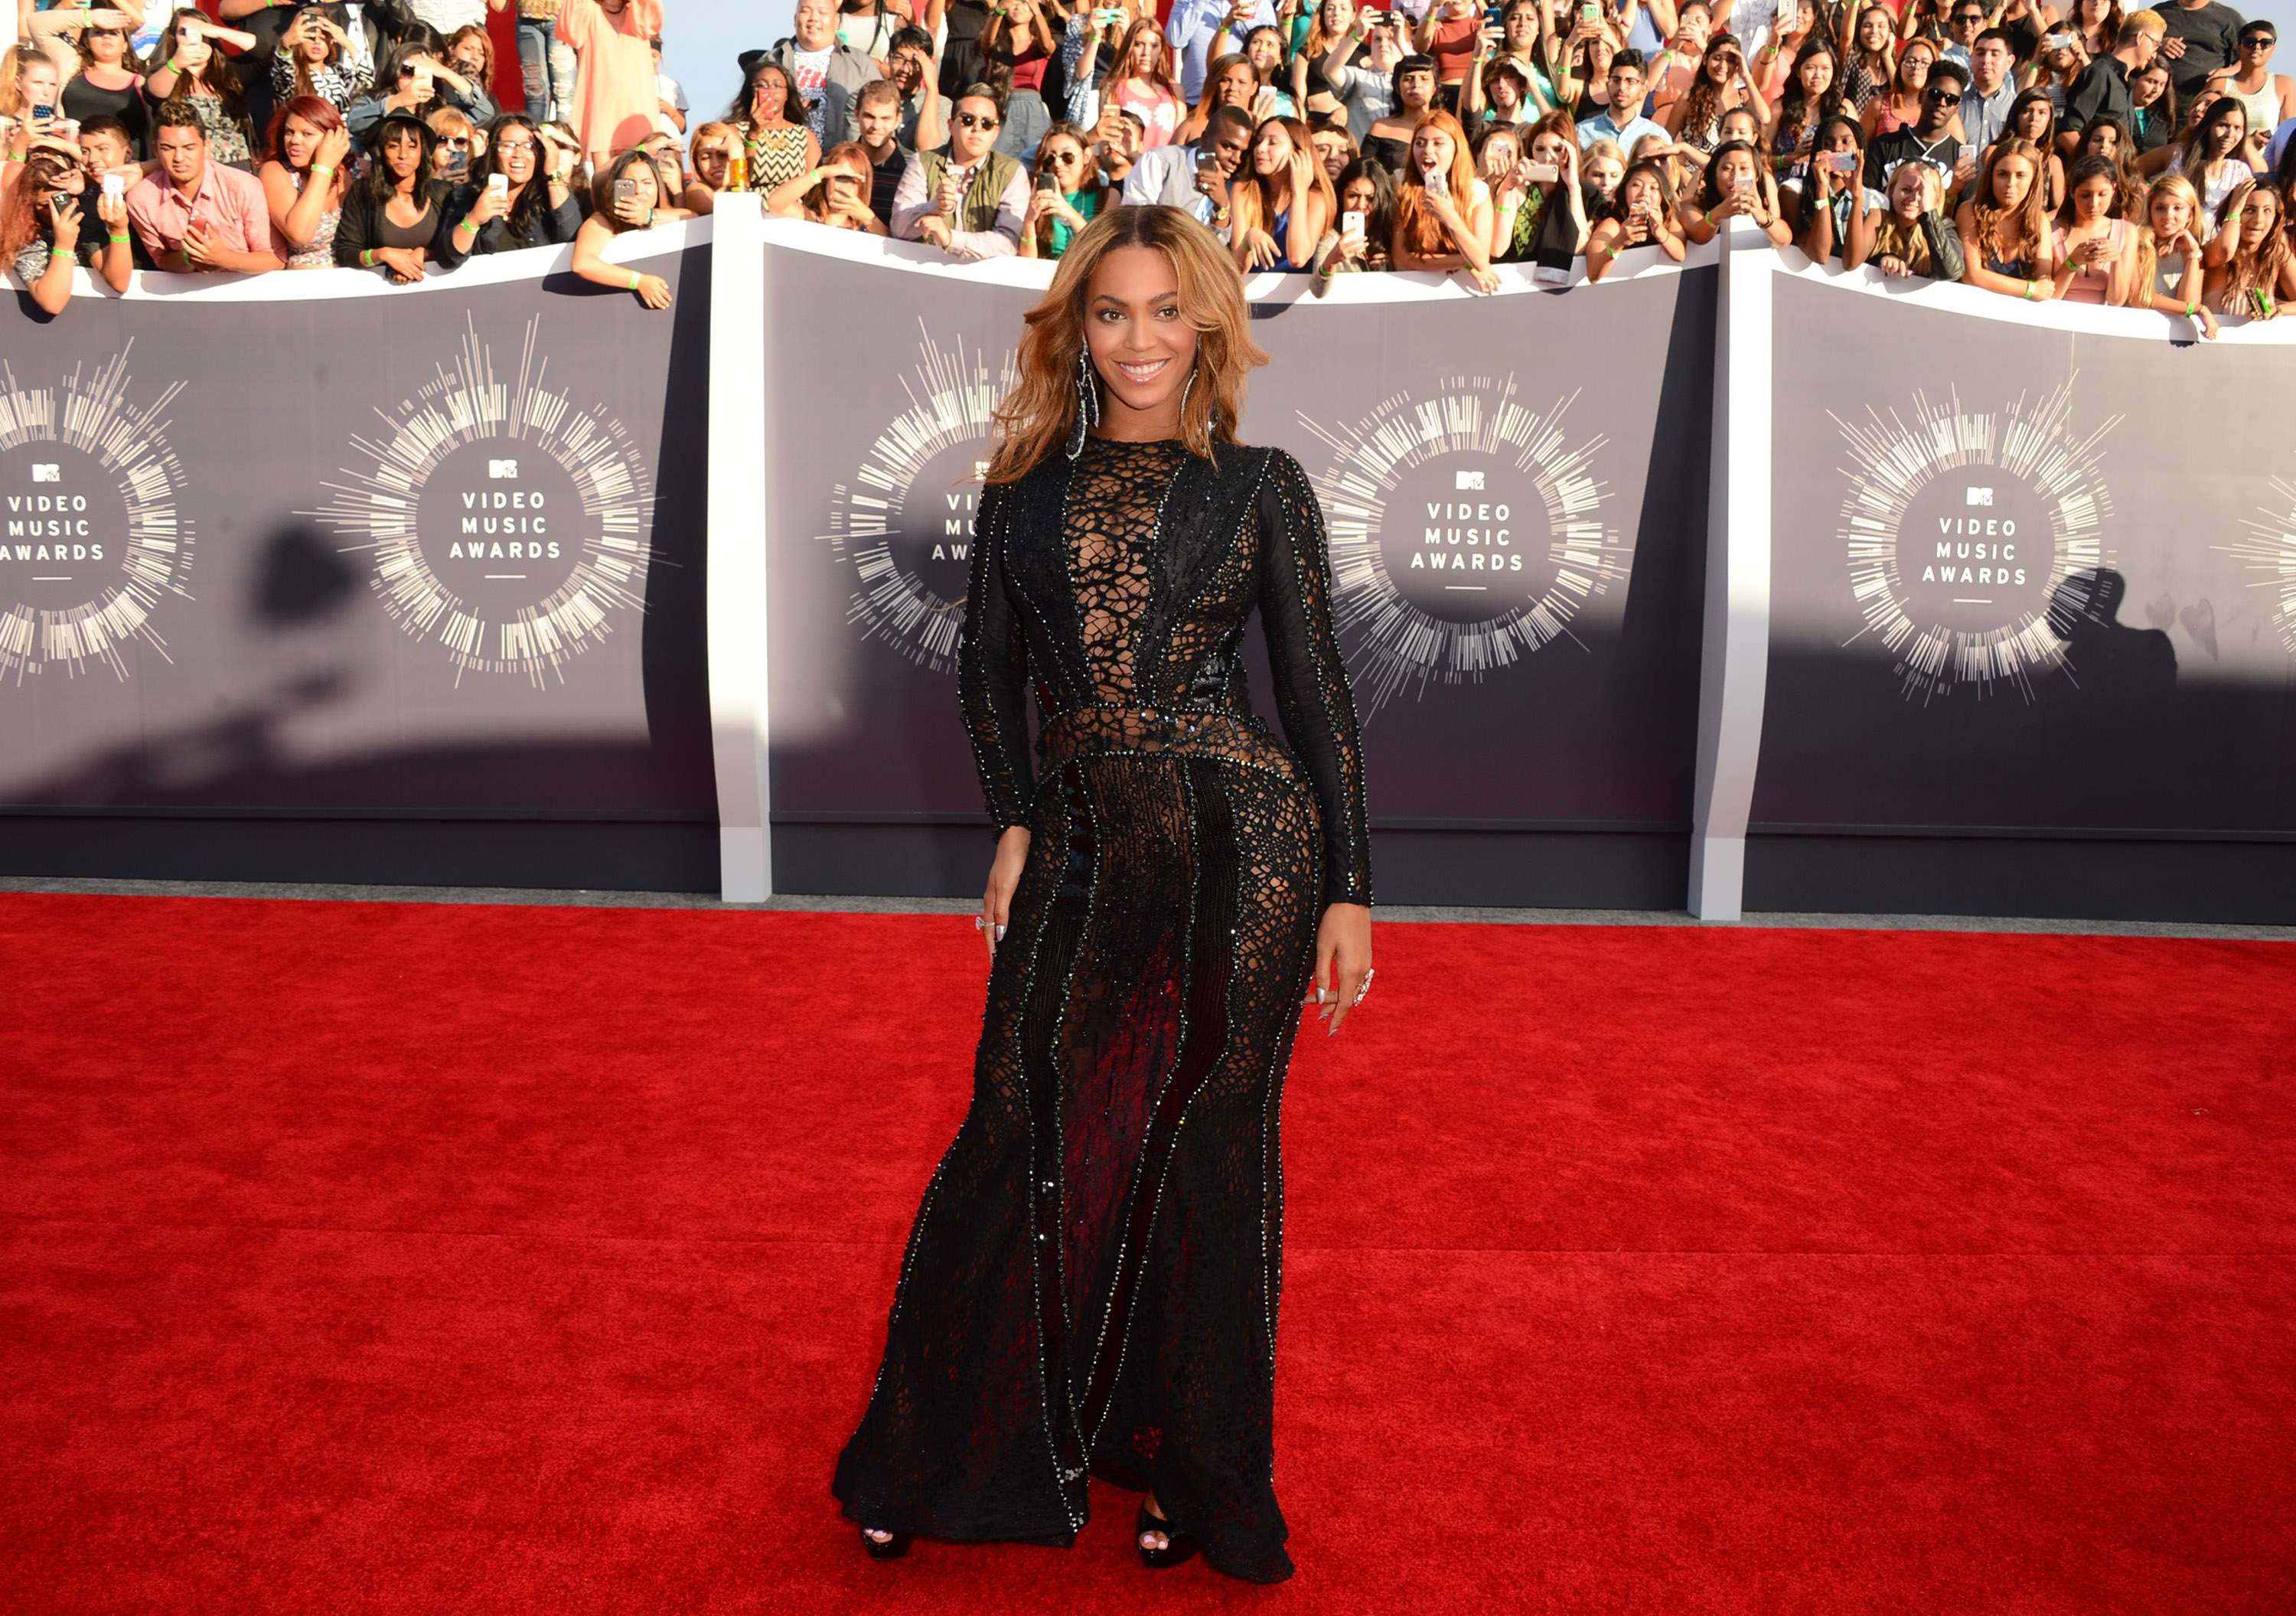 Beyoncé: reina indiscutible de los MTV Video Music Awards